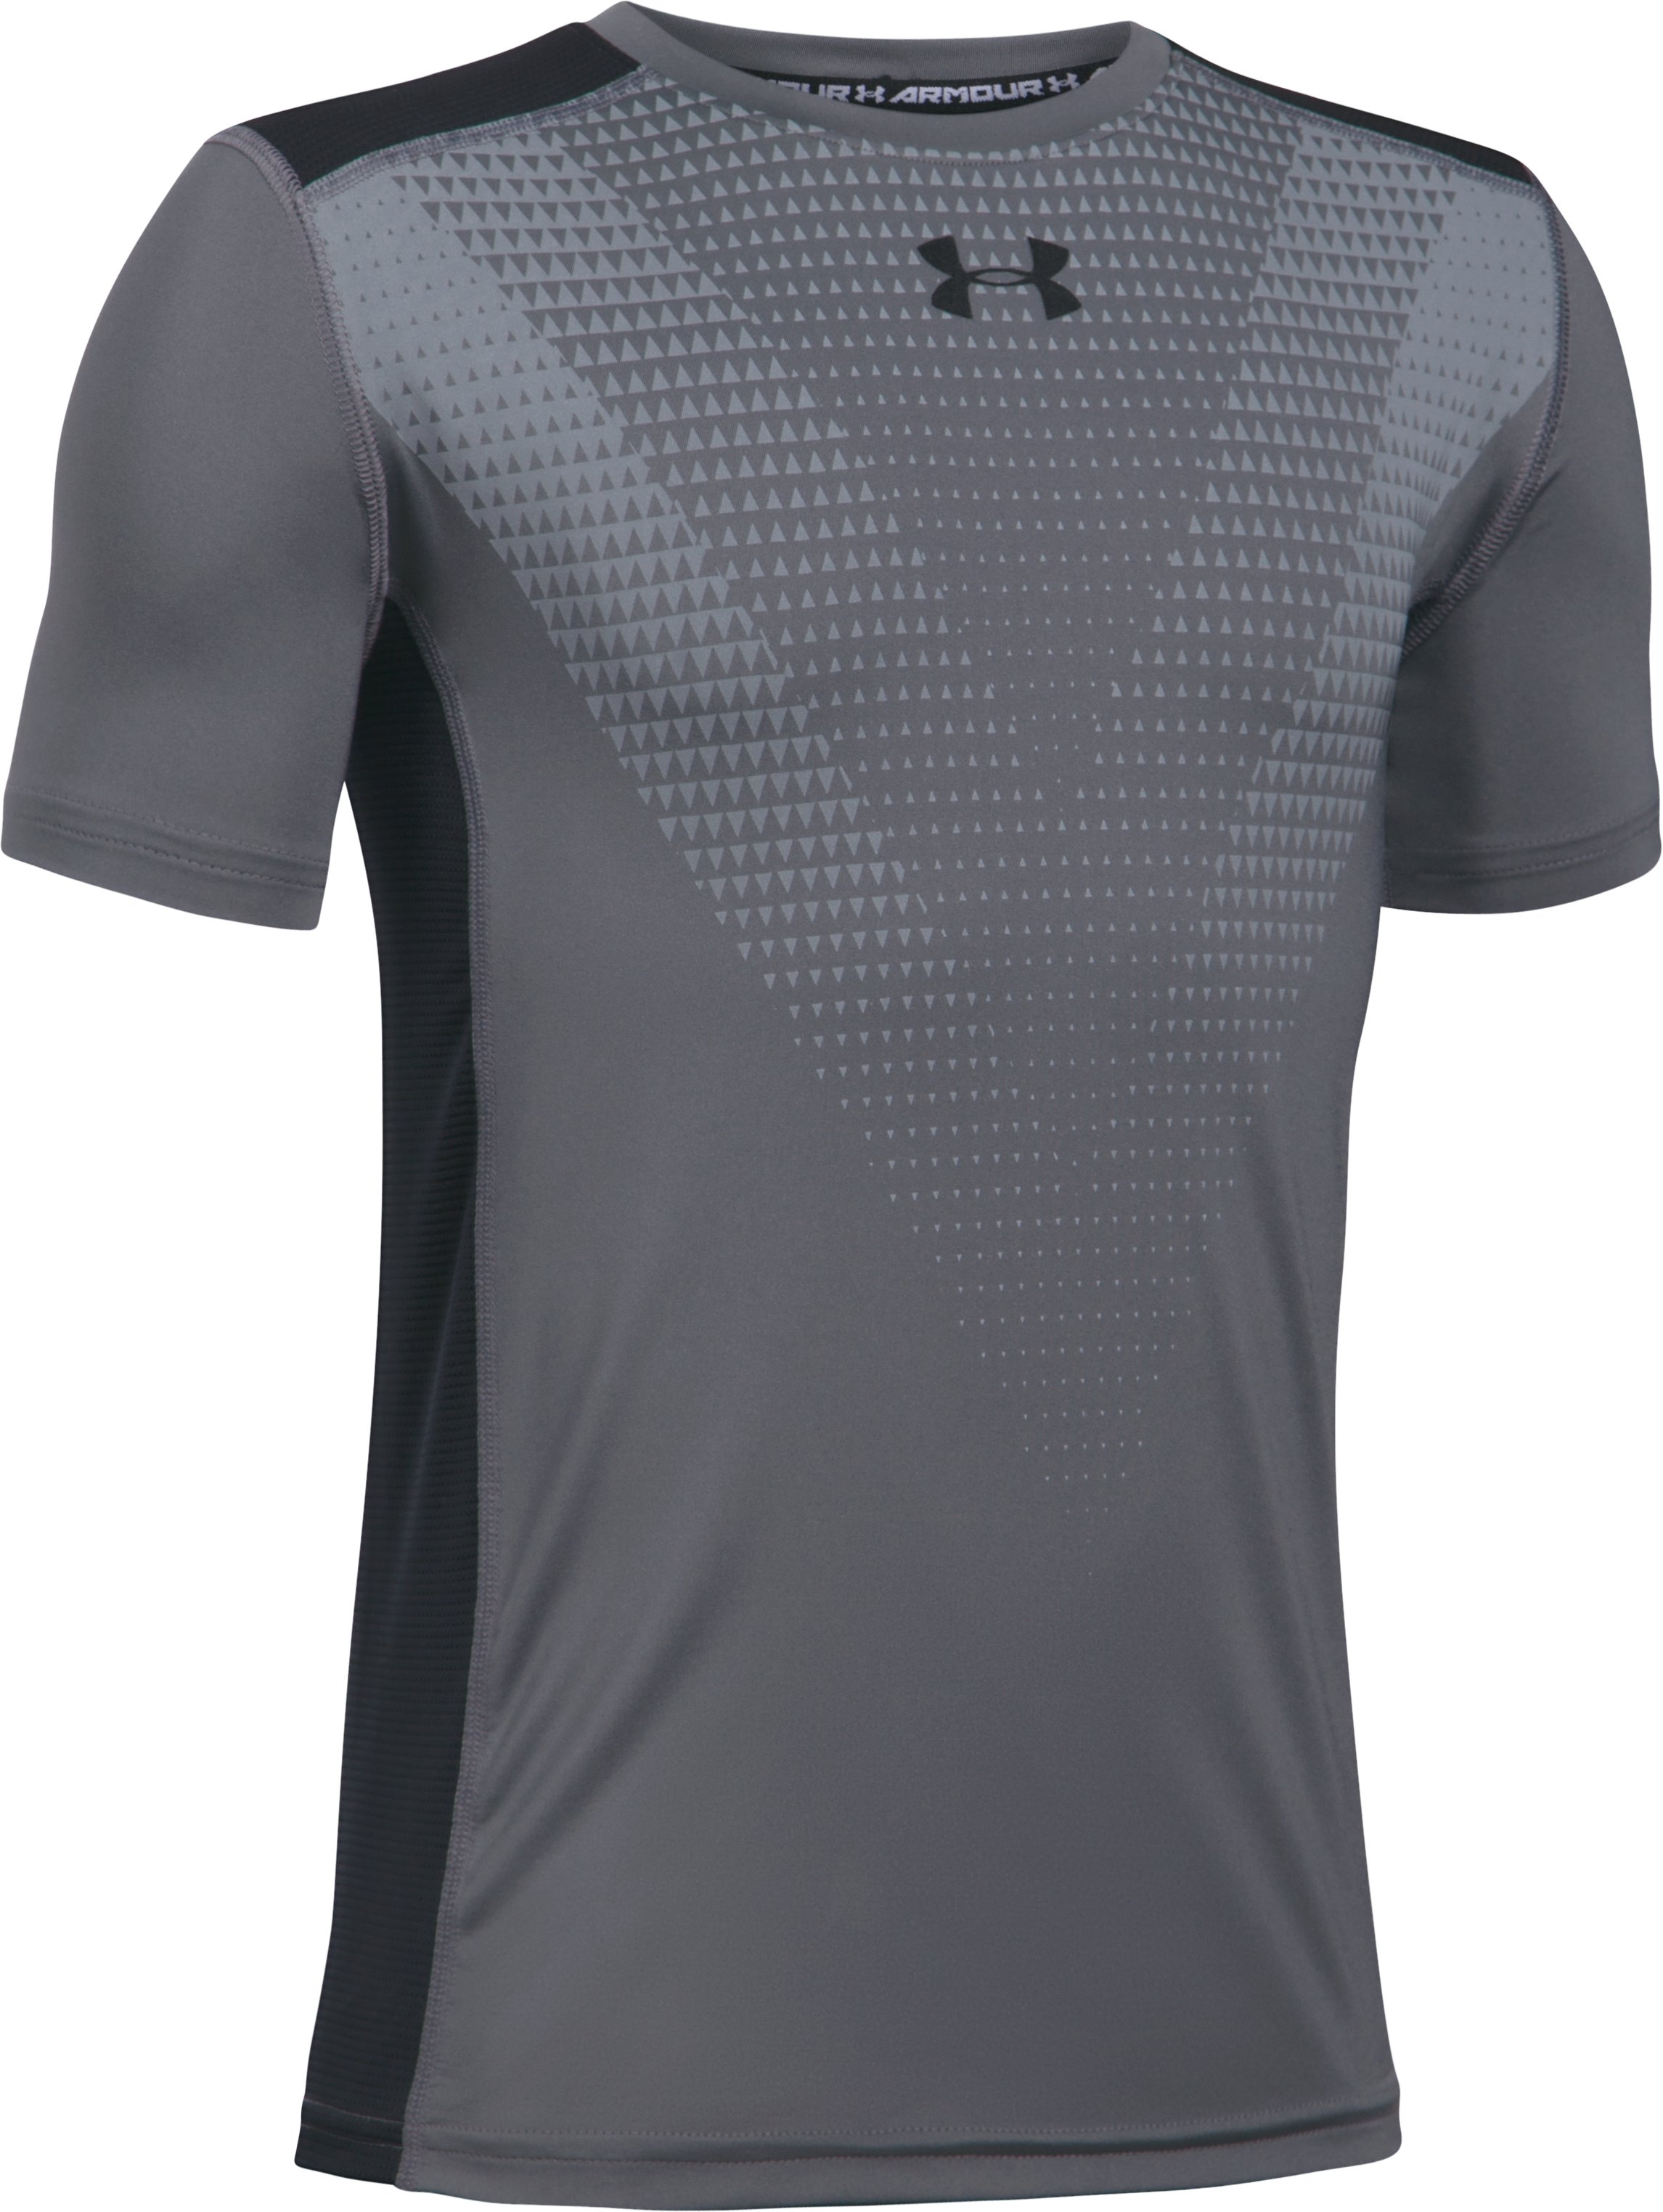 Boys' UA Select T-Shirt, Graphite